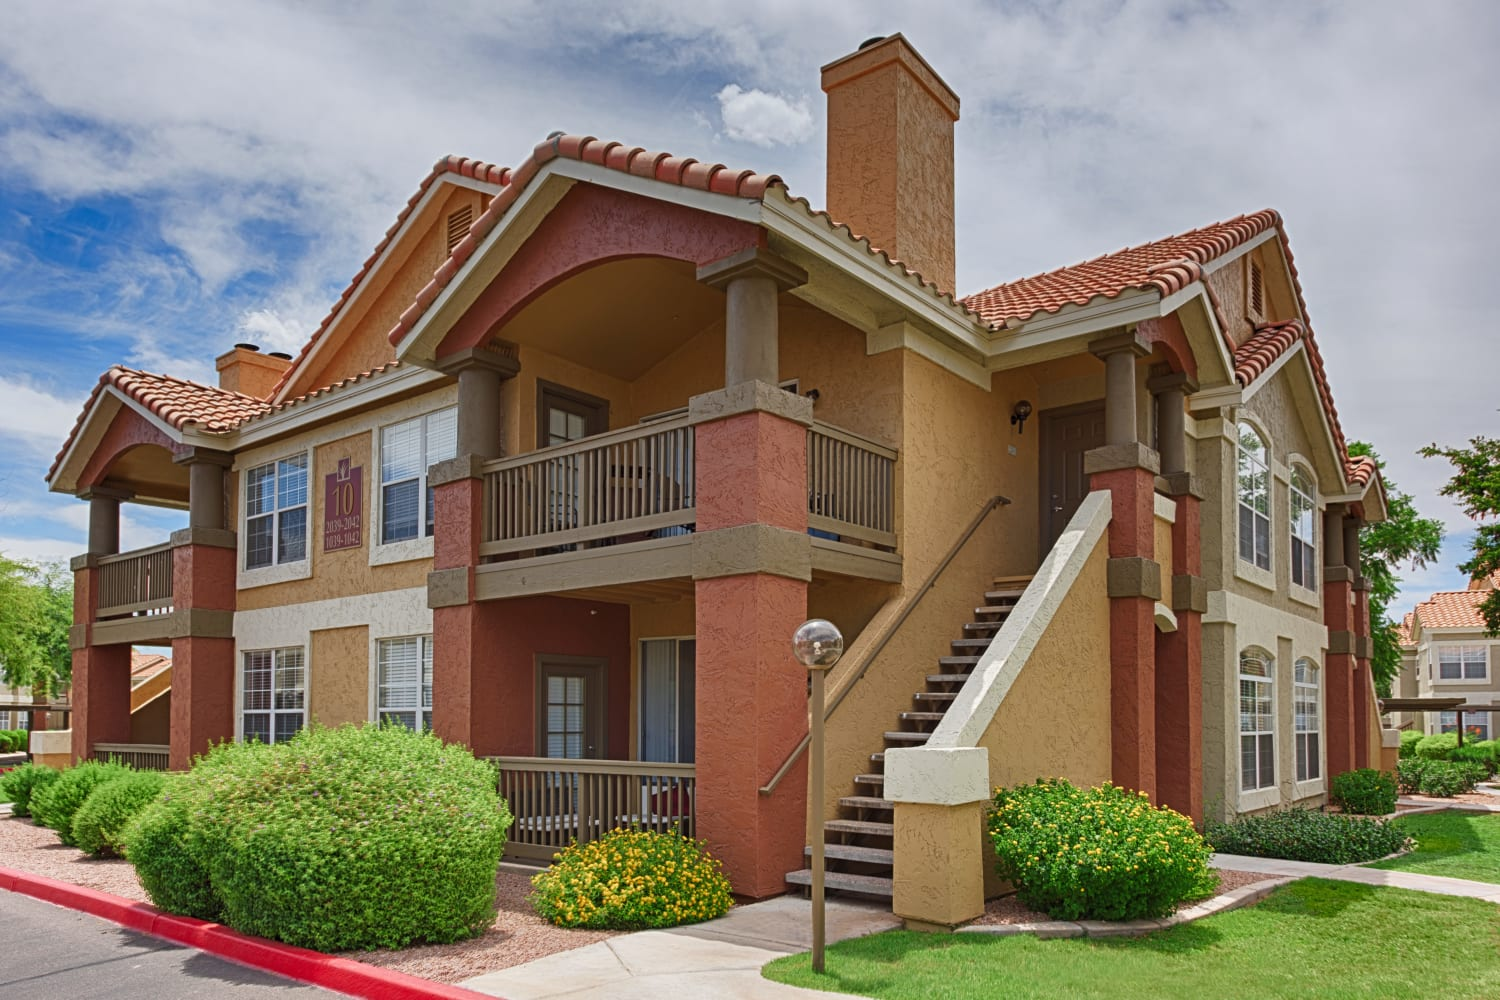 Sonoran Vista Apartments in Scottsdale, Arizona, offer beautiful buildings with well maintained grounds